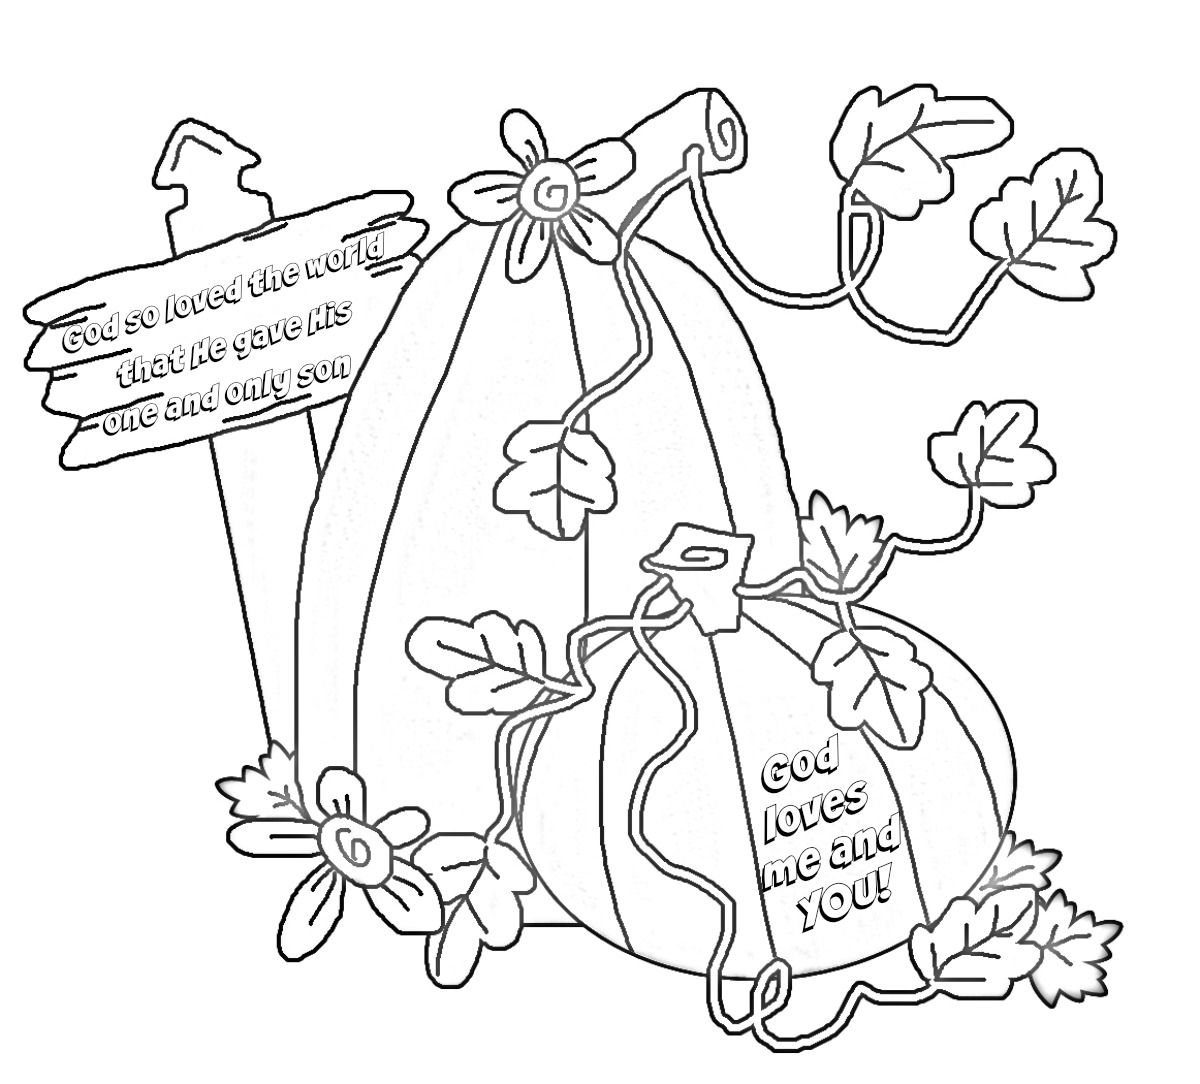 coloring pages to encourage - photo#36